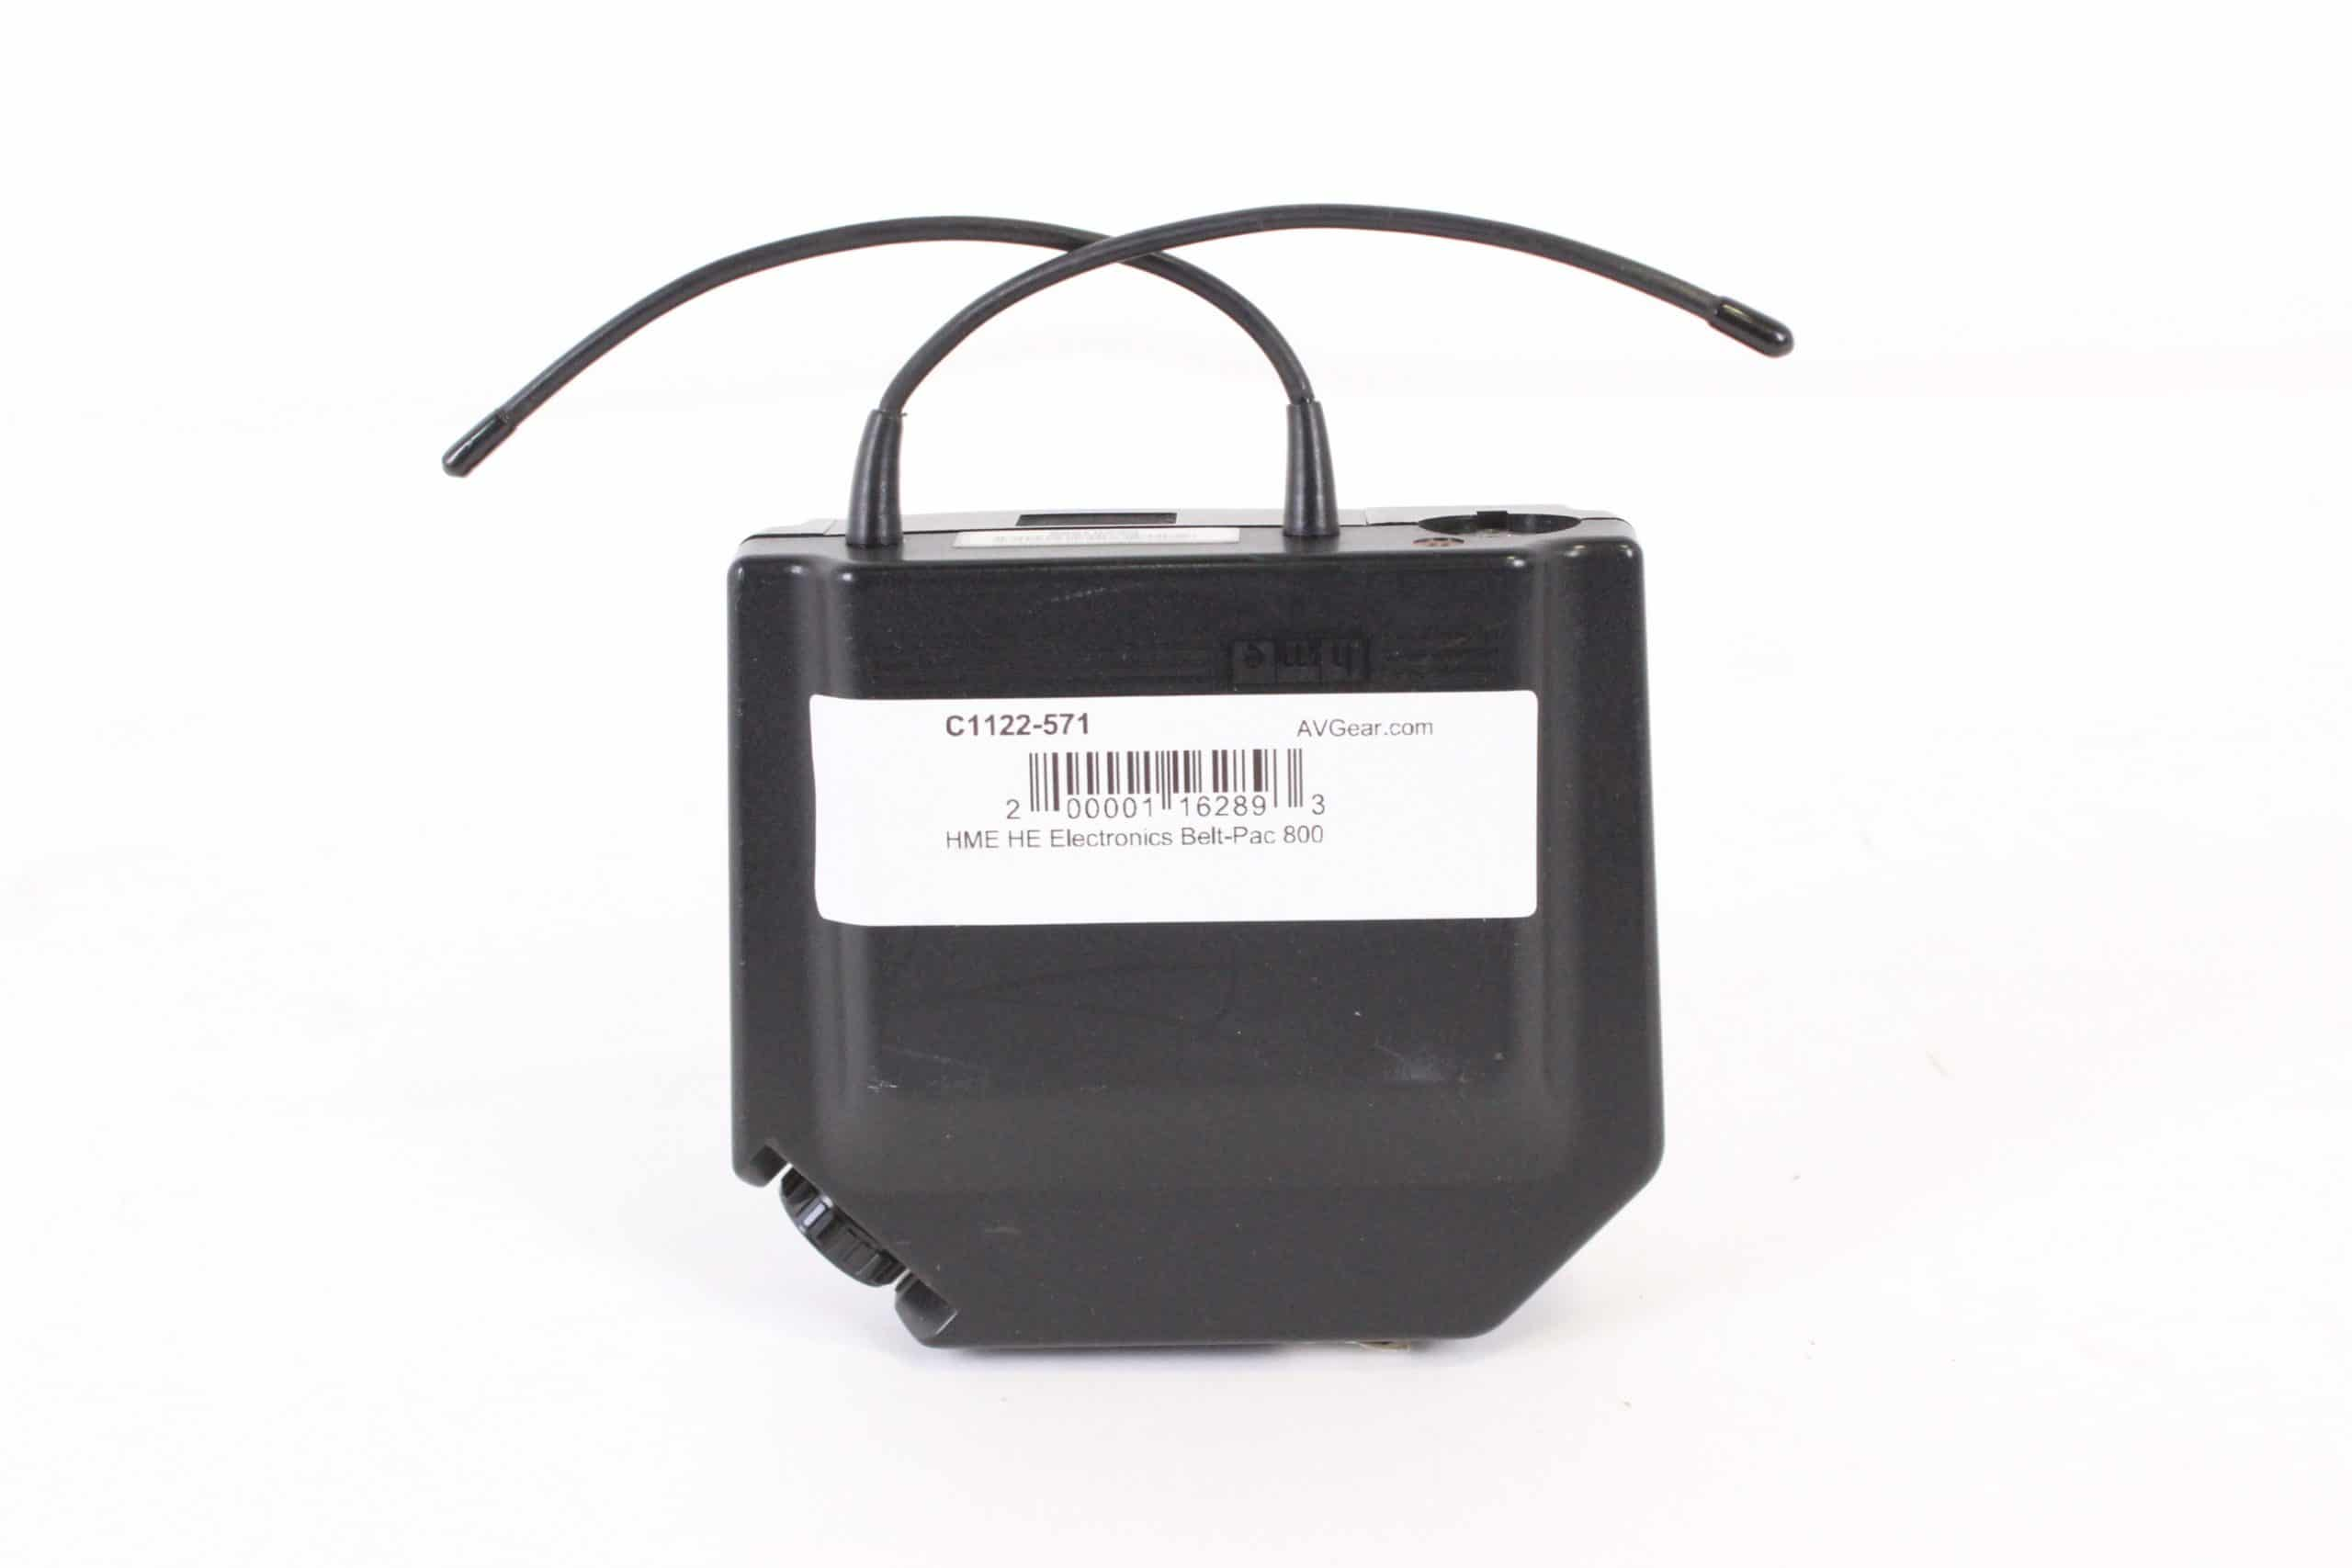 hme-he-electronics-belt-pac-800 front